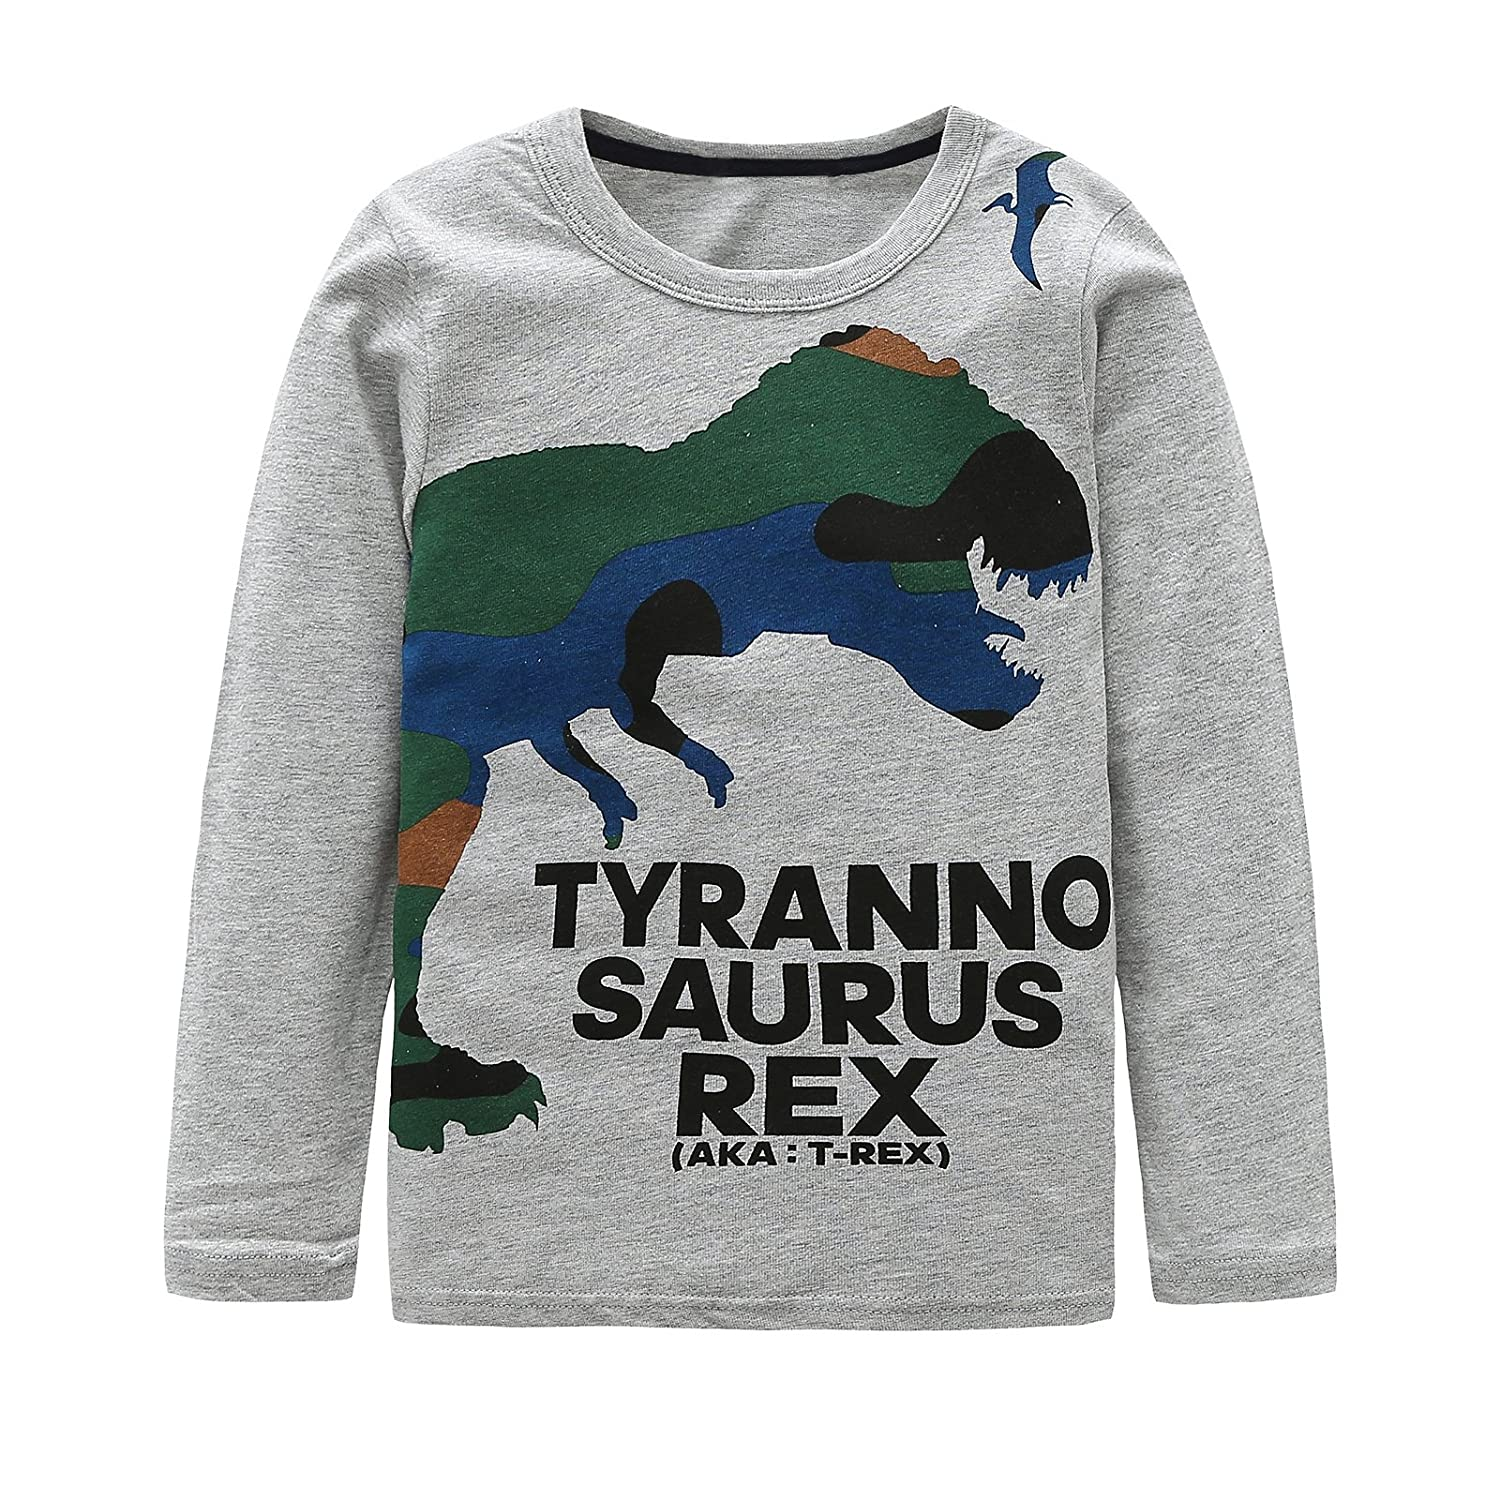 Boys Cotton Long Sleeve T-Shirts T Rex Dinosaur Shirt Graphic Tees